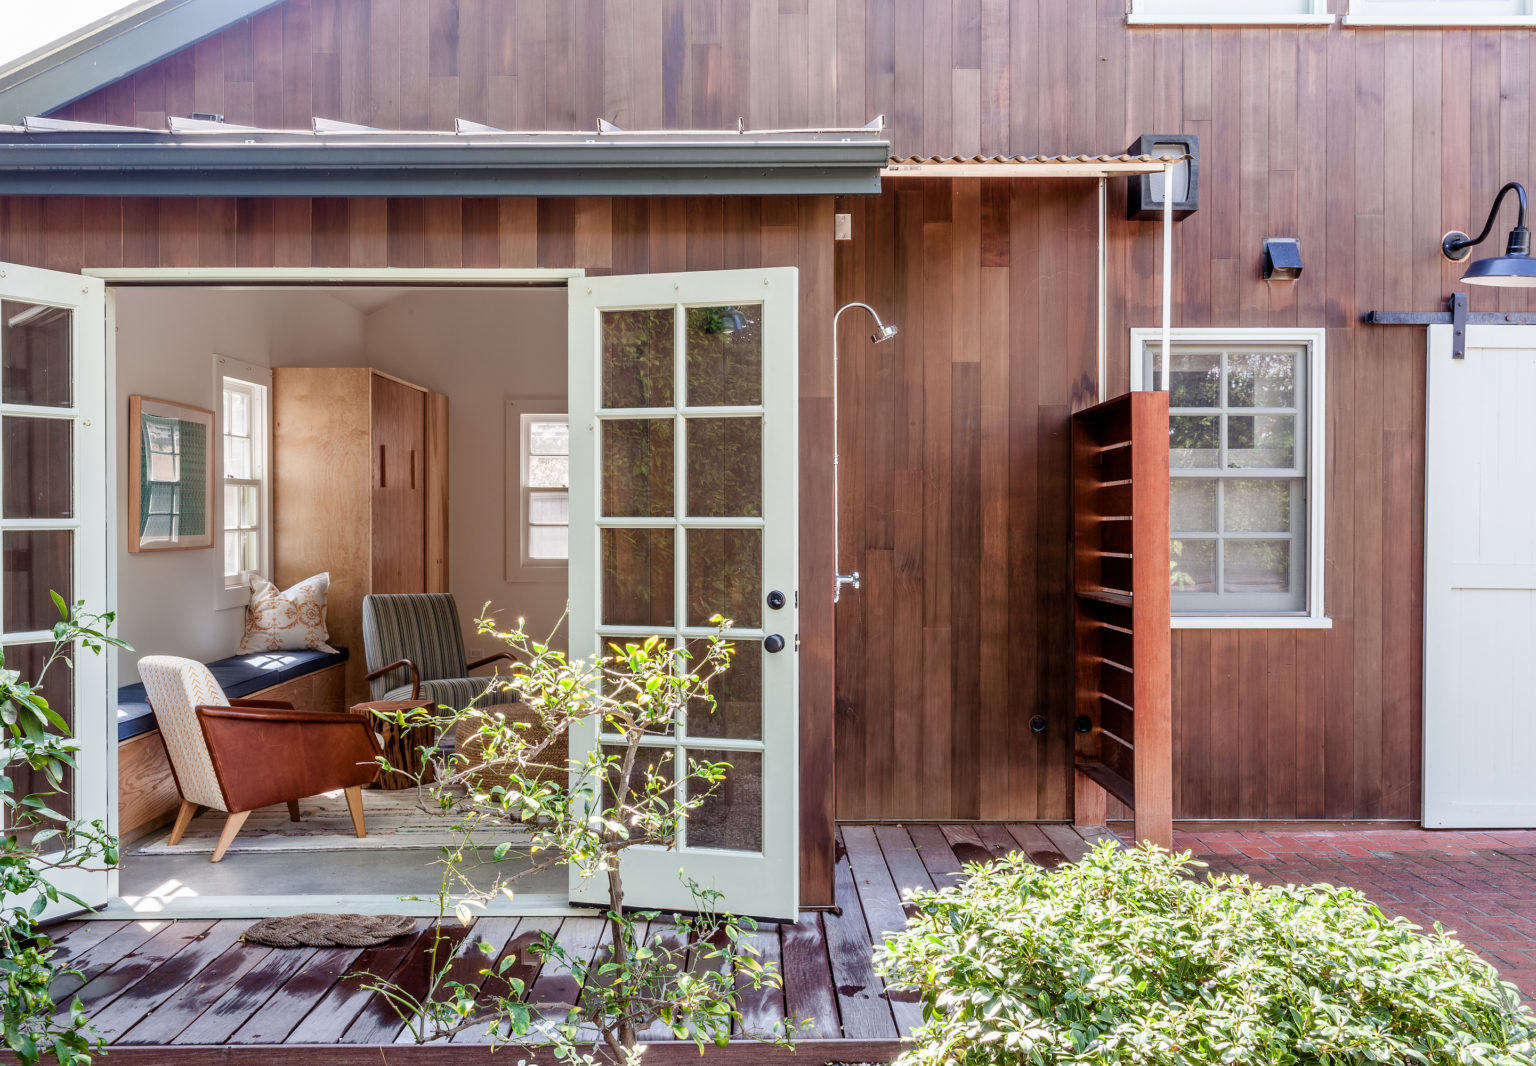 Small Space Living A Garage Conversion That Prioritizes Smart Storage